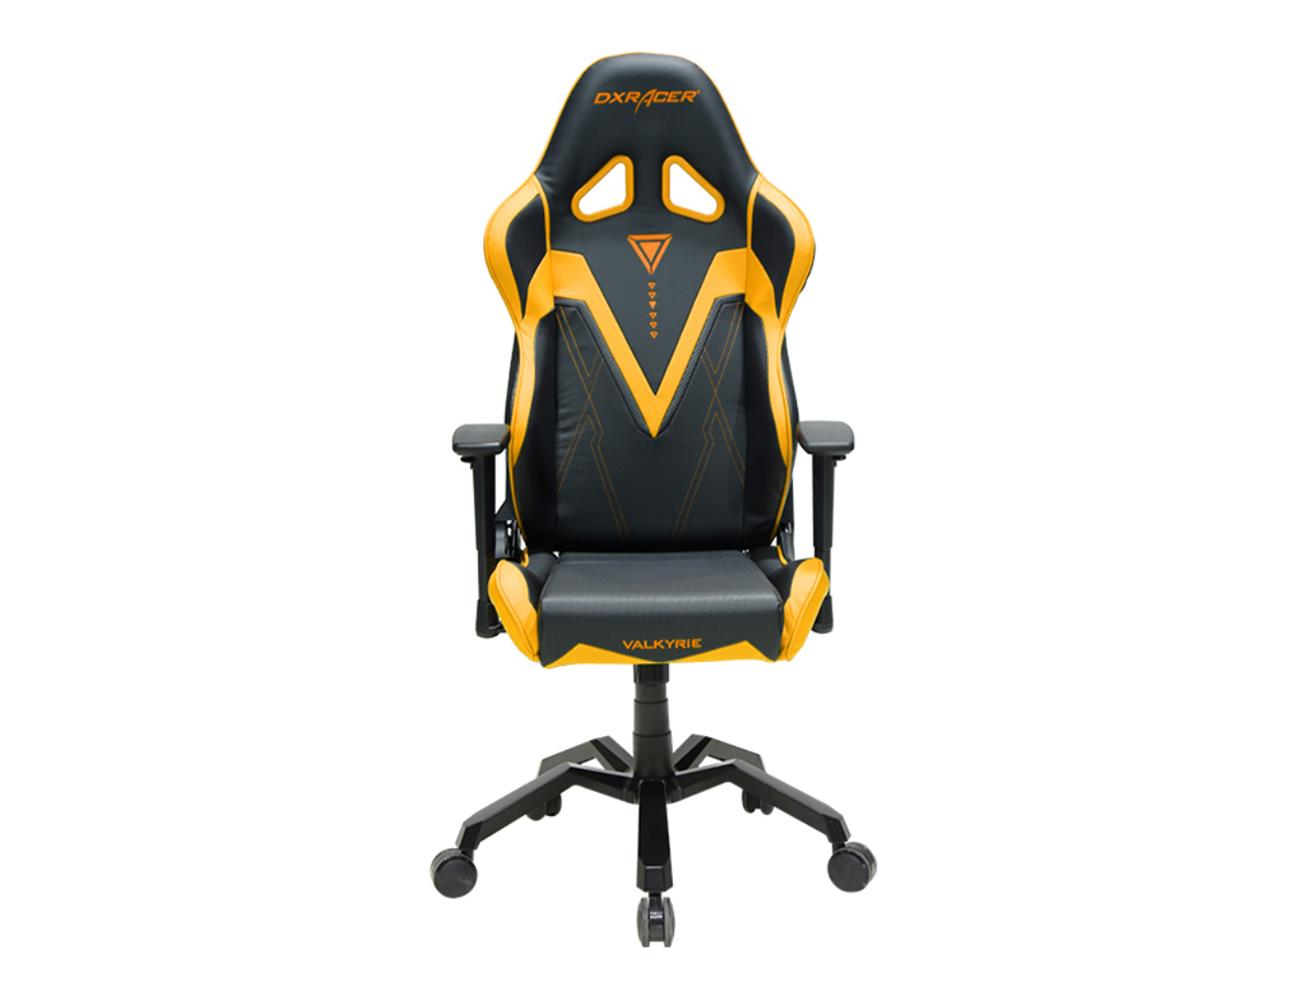 DXRACER Valkyrie Series Gaming Chair - Black/Yellow